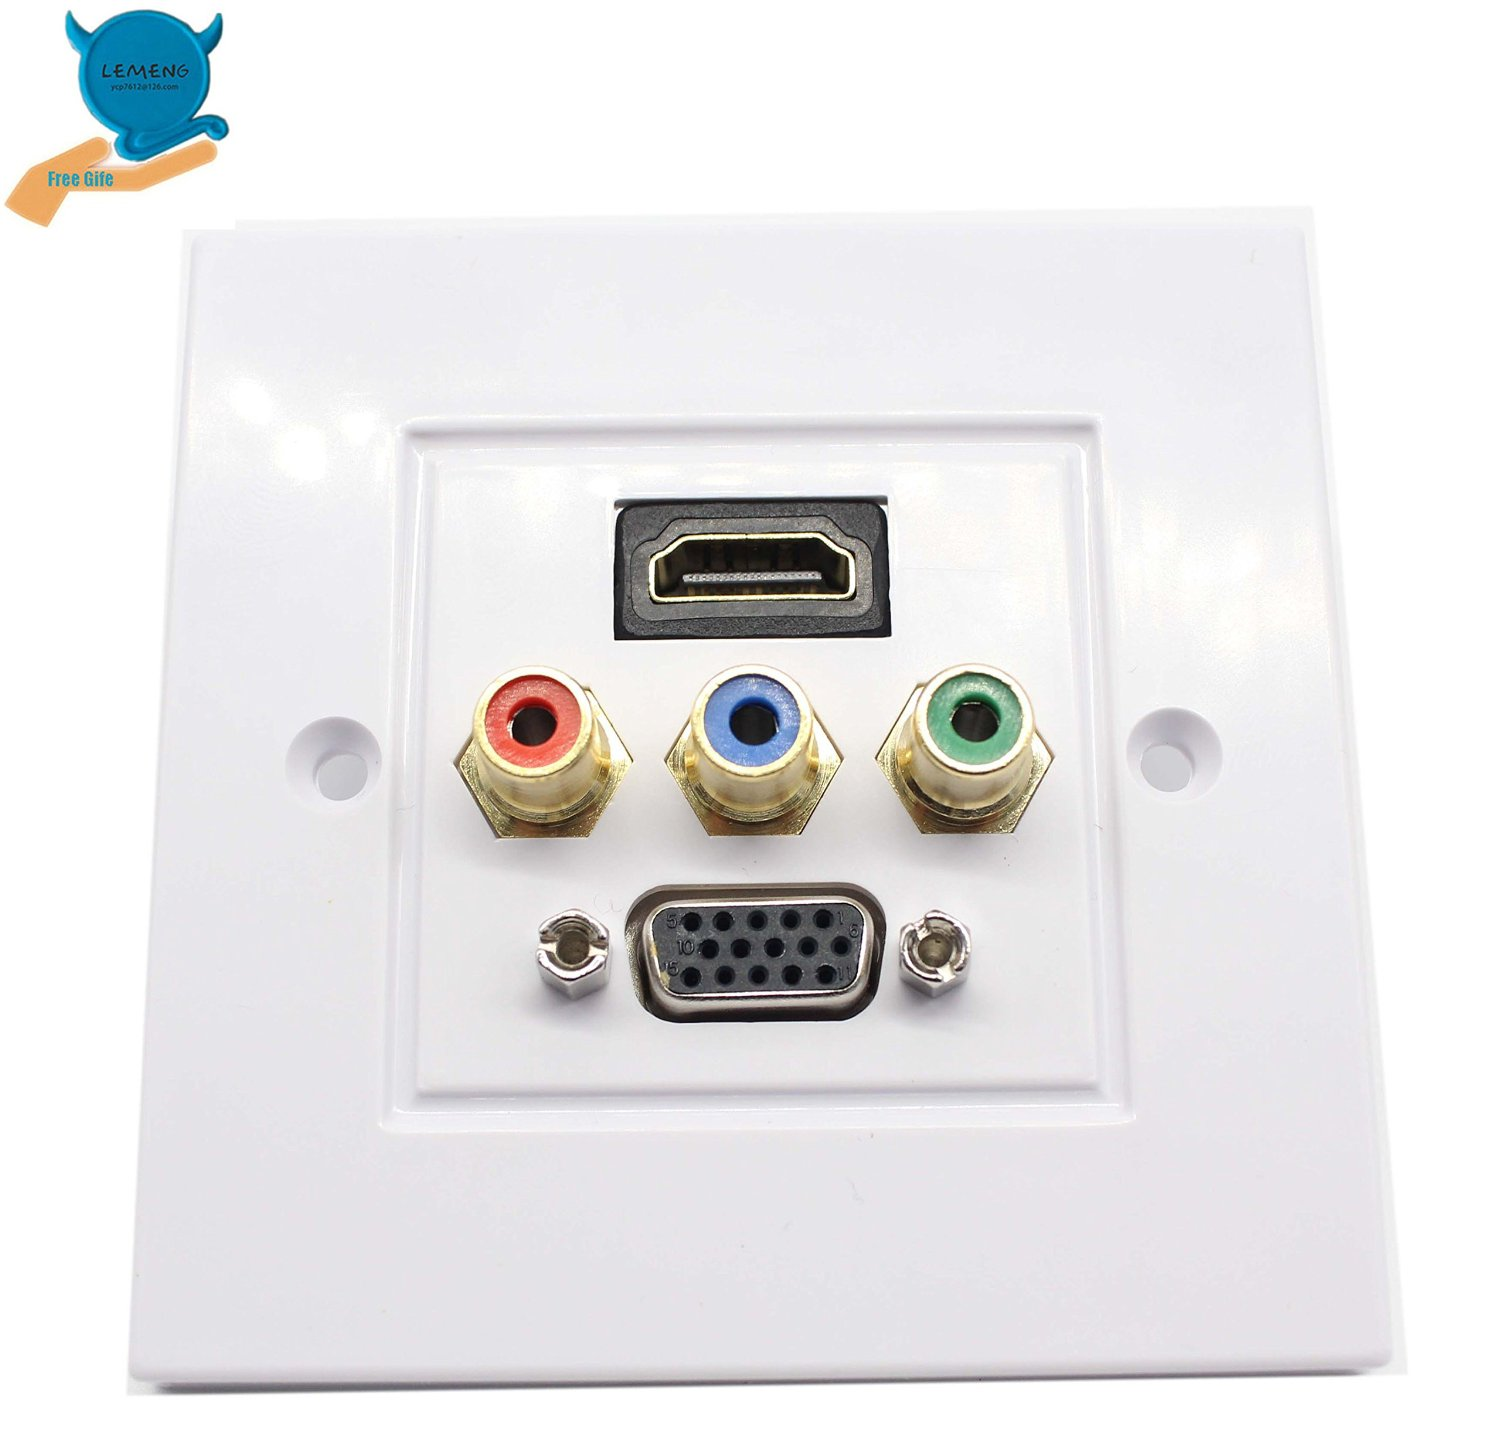 Hdmi Outlet Buy Lemeng Hdmi Vga 3rca Av Wall Plate Composite Video Audio